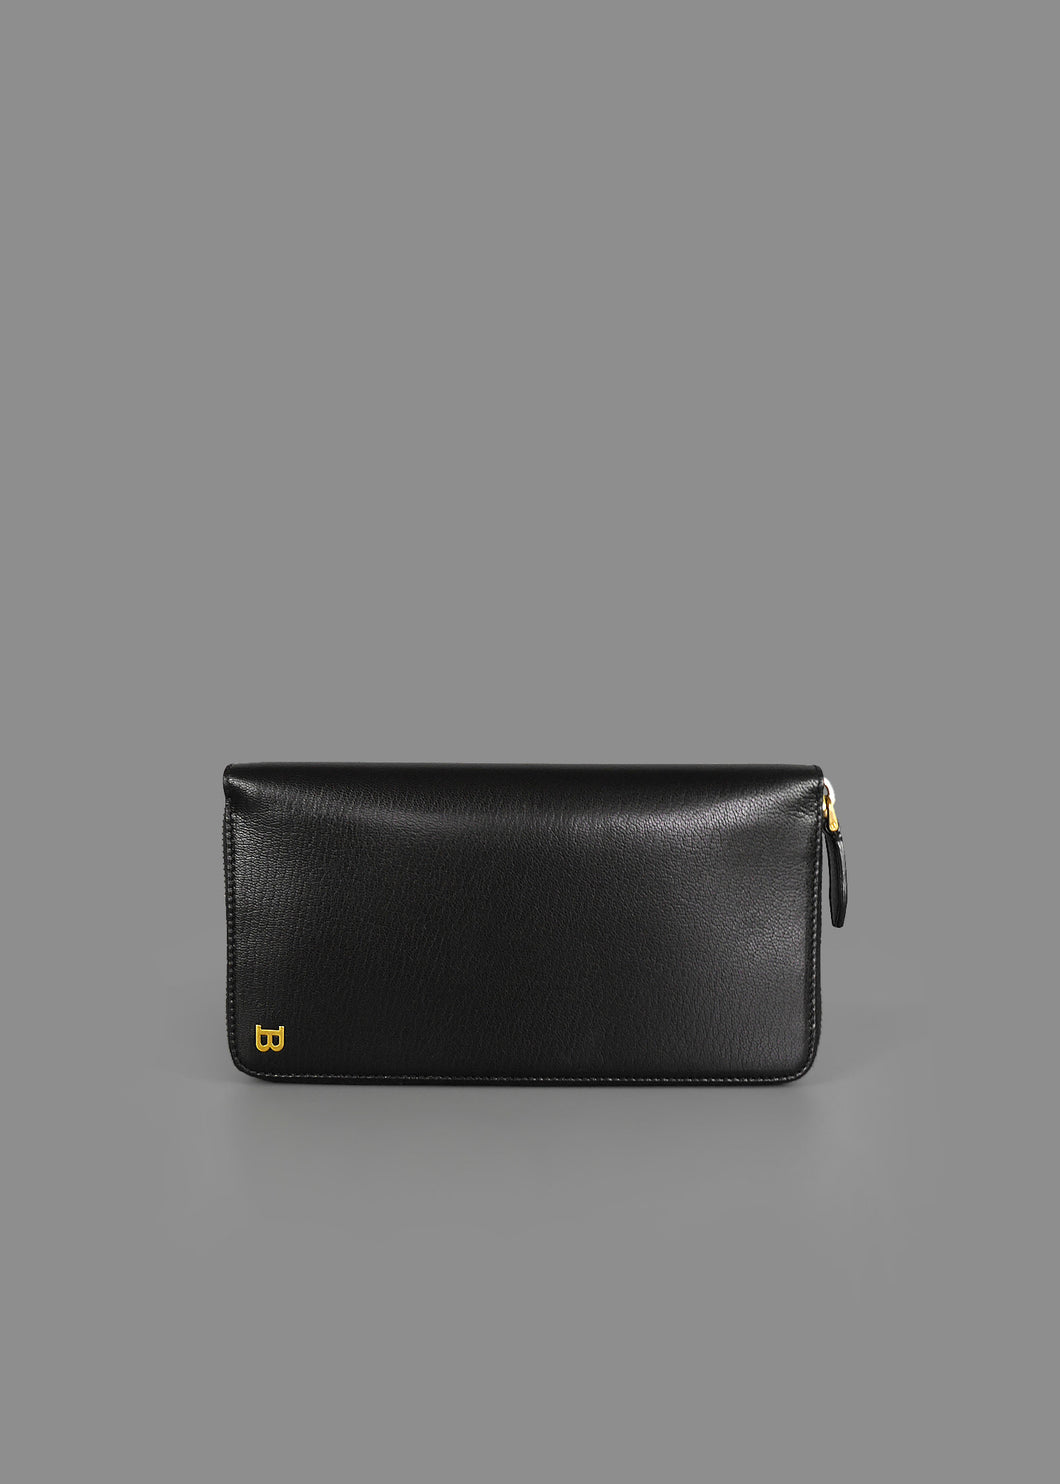 ca659690255f Bally HYNE.CNY Smooth Black Goat Leather Long Wallet (Special Edition)